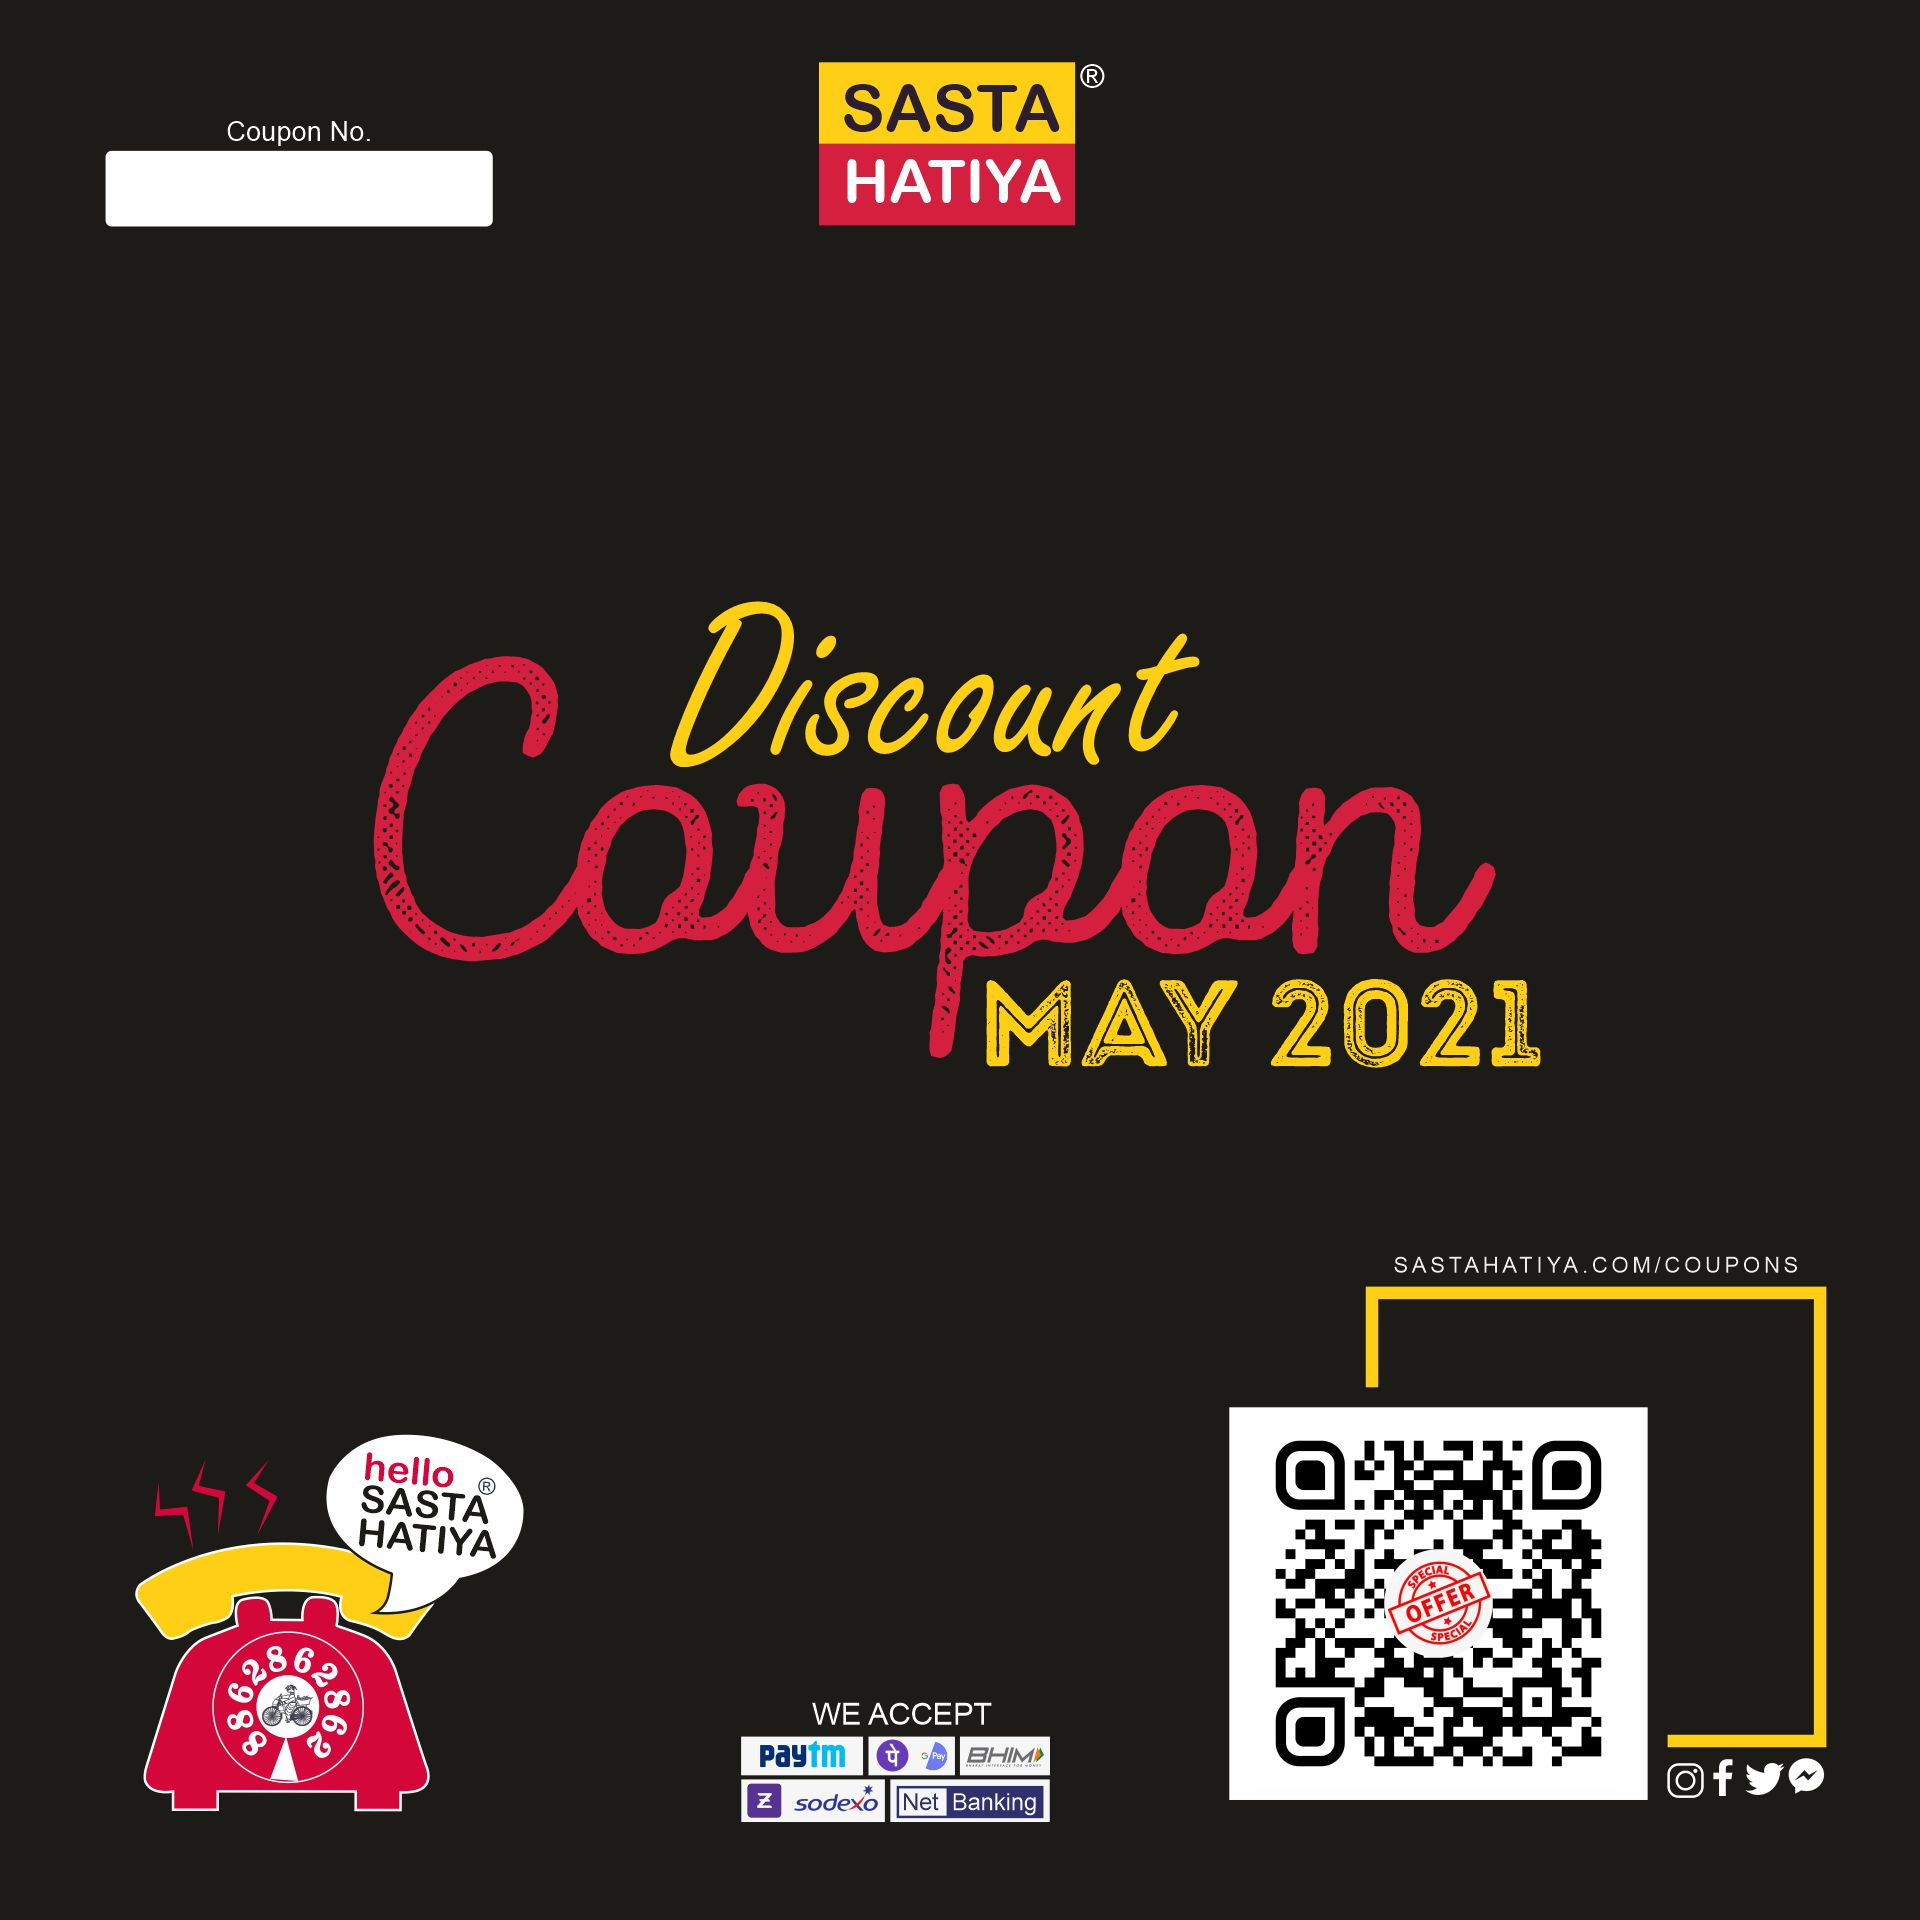 Next Purchase Coupon offer for May 2021